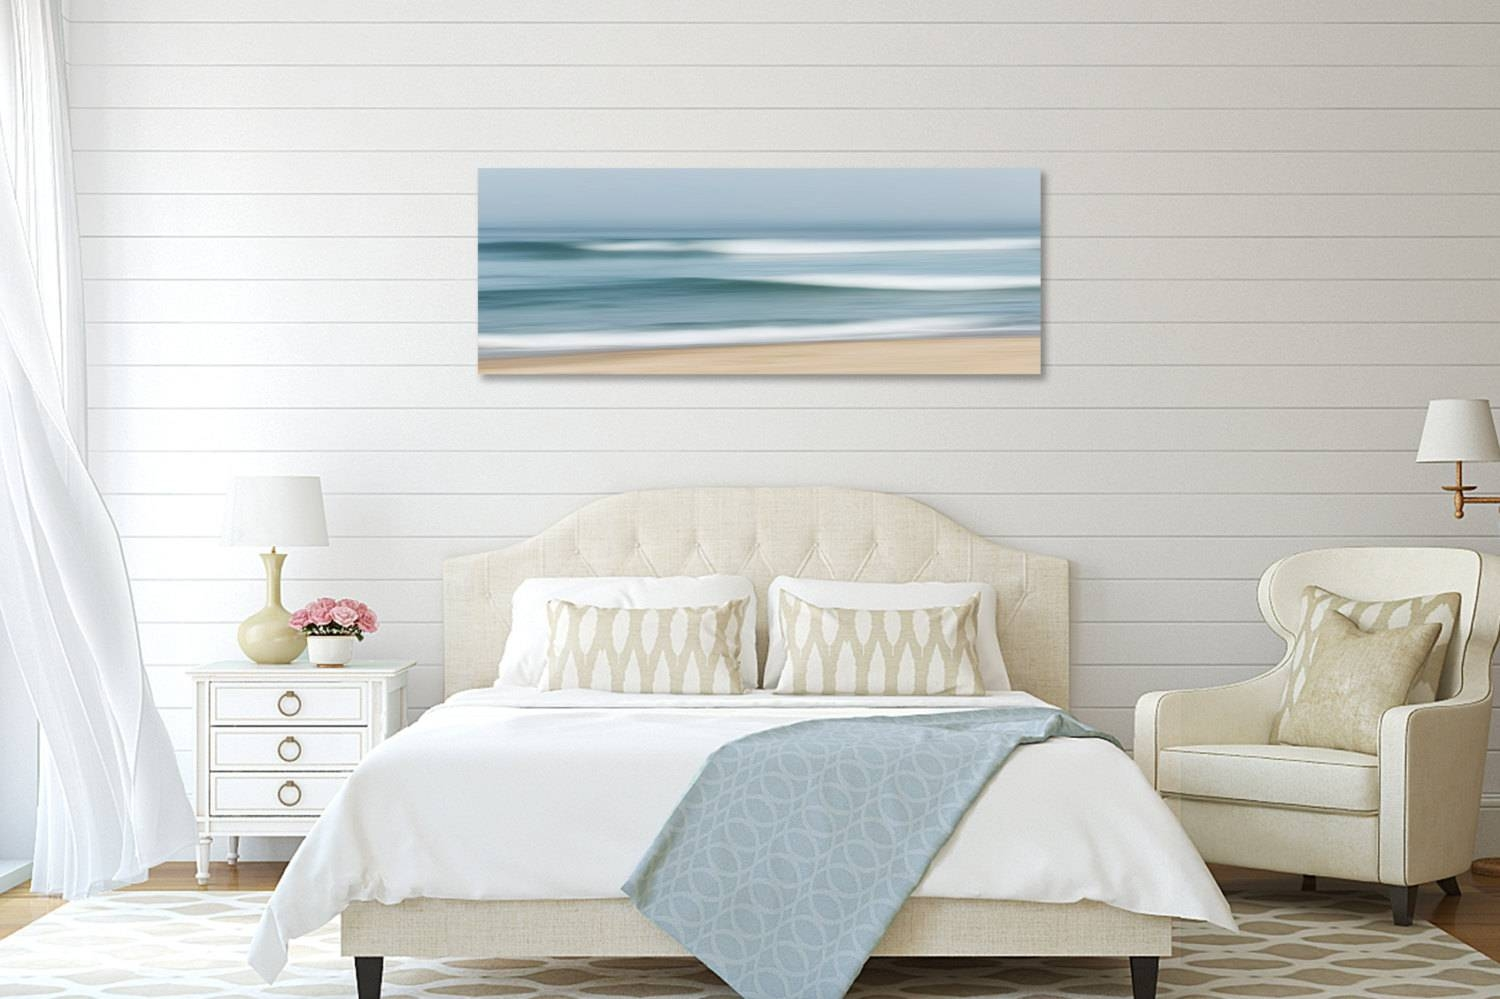 Coastal Wall Decor: 2019 Popular Coastal Wall Art Canvas